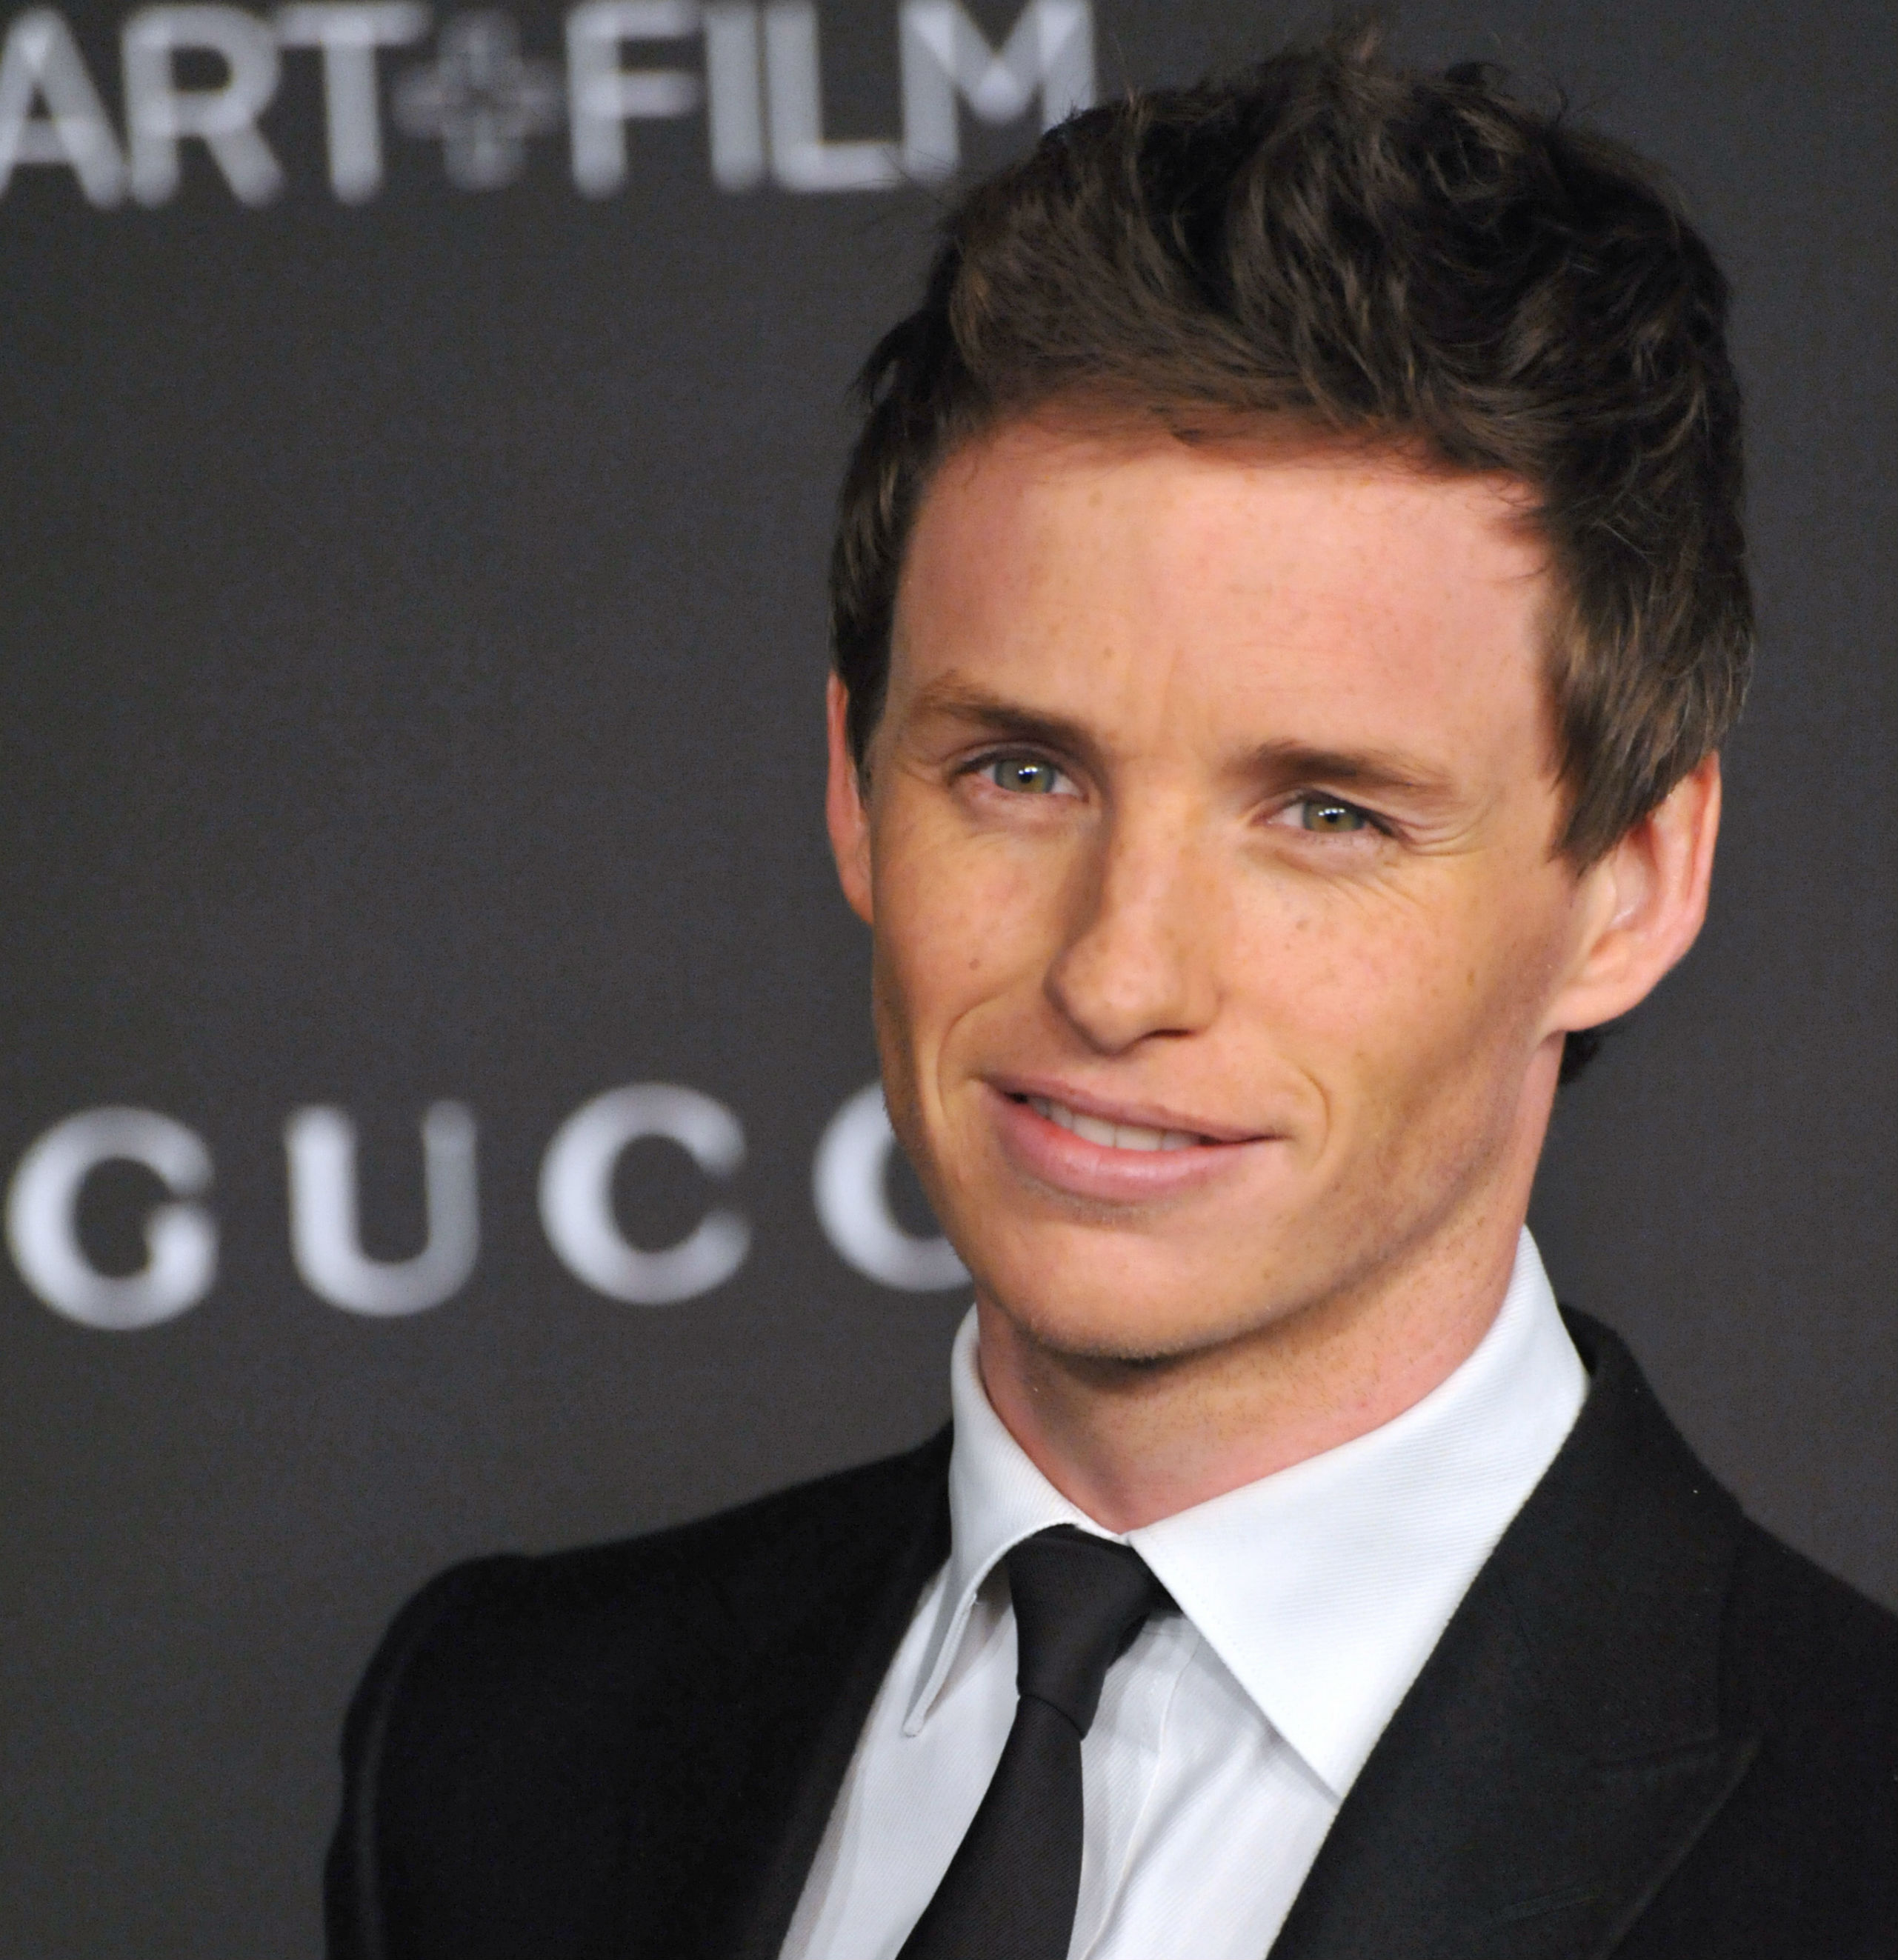 EDDIE REDMAYNE. The 'Theory of Everything' star was among those honored by the Queen